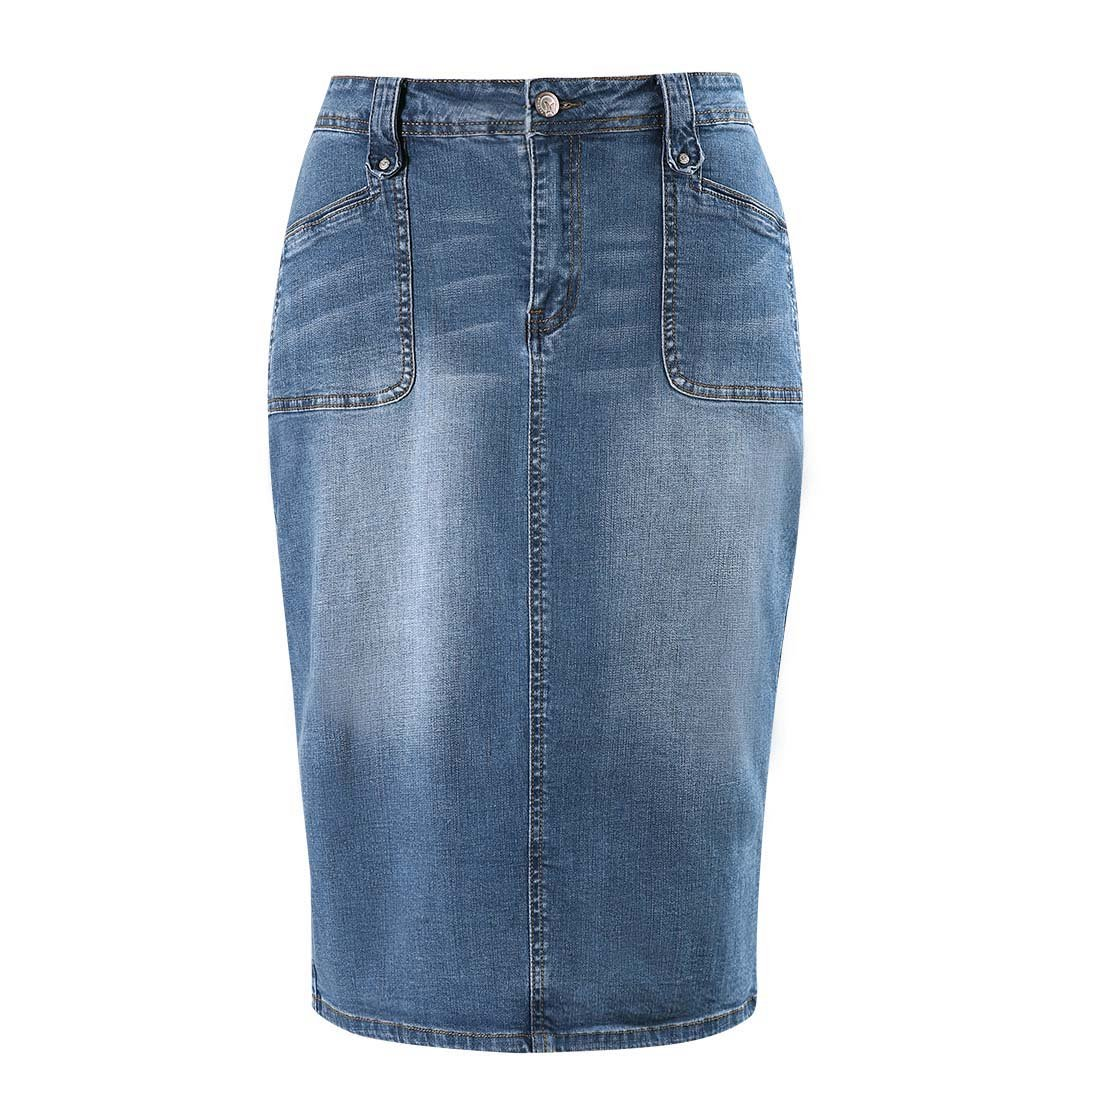 MSSHE Women's Plus Size High Waist Stretchy Pencil Denim Midi Skirt M11728(1)